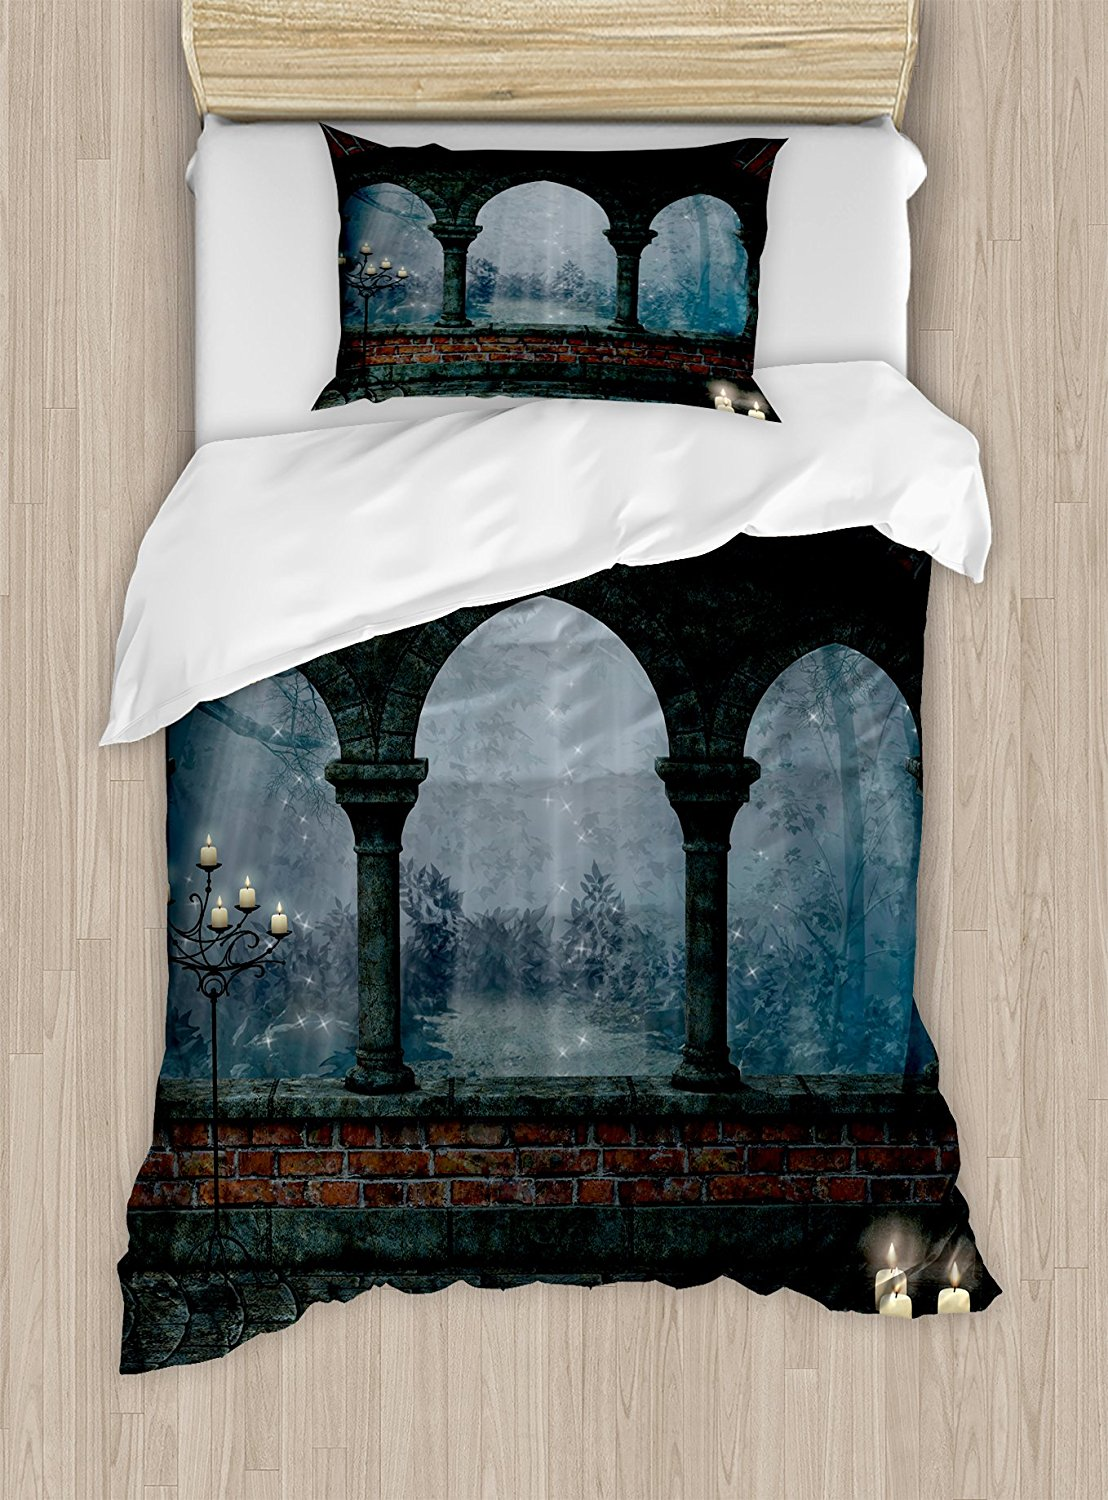 Gothic Duvet Cover Set Medieval Castle at Night with Old Arch and Candles Middle Age Misty Image Decor 4 Piece Bedding Set